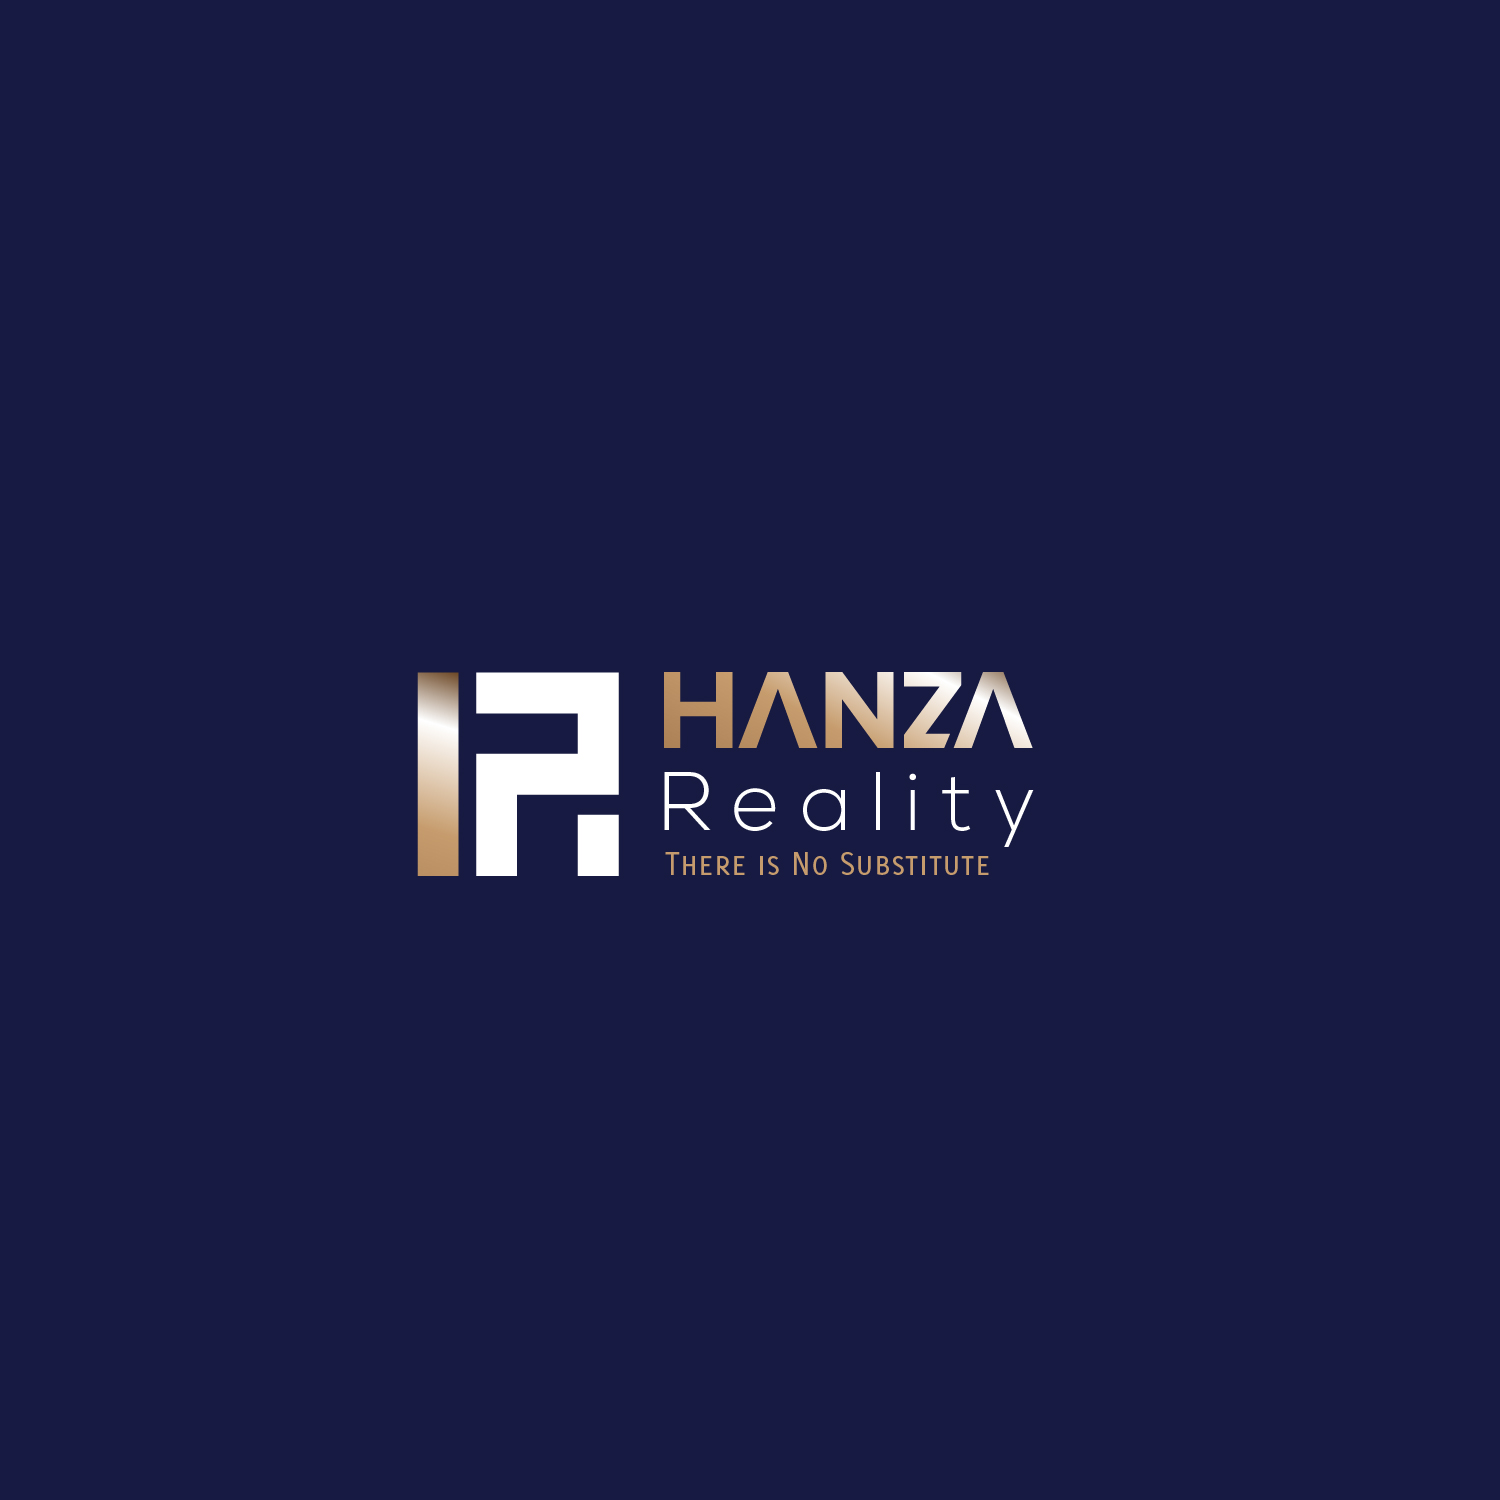 Logo Design by Irshad Siddiqui - Entry No. 430 in the Logo Design Contest Logo Design for Hanza Realty.